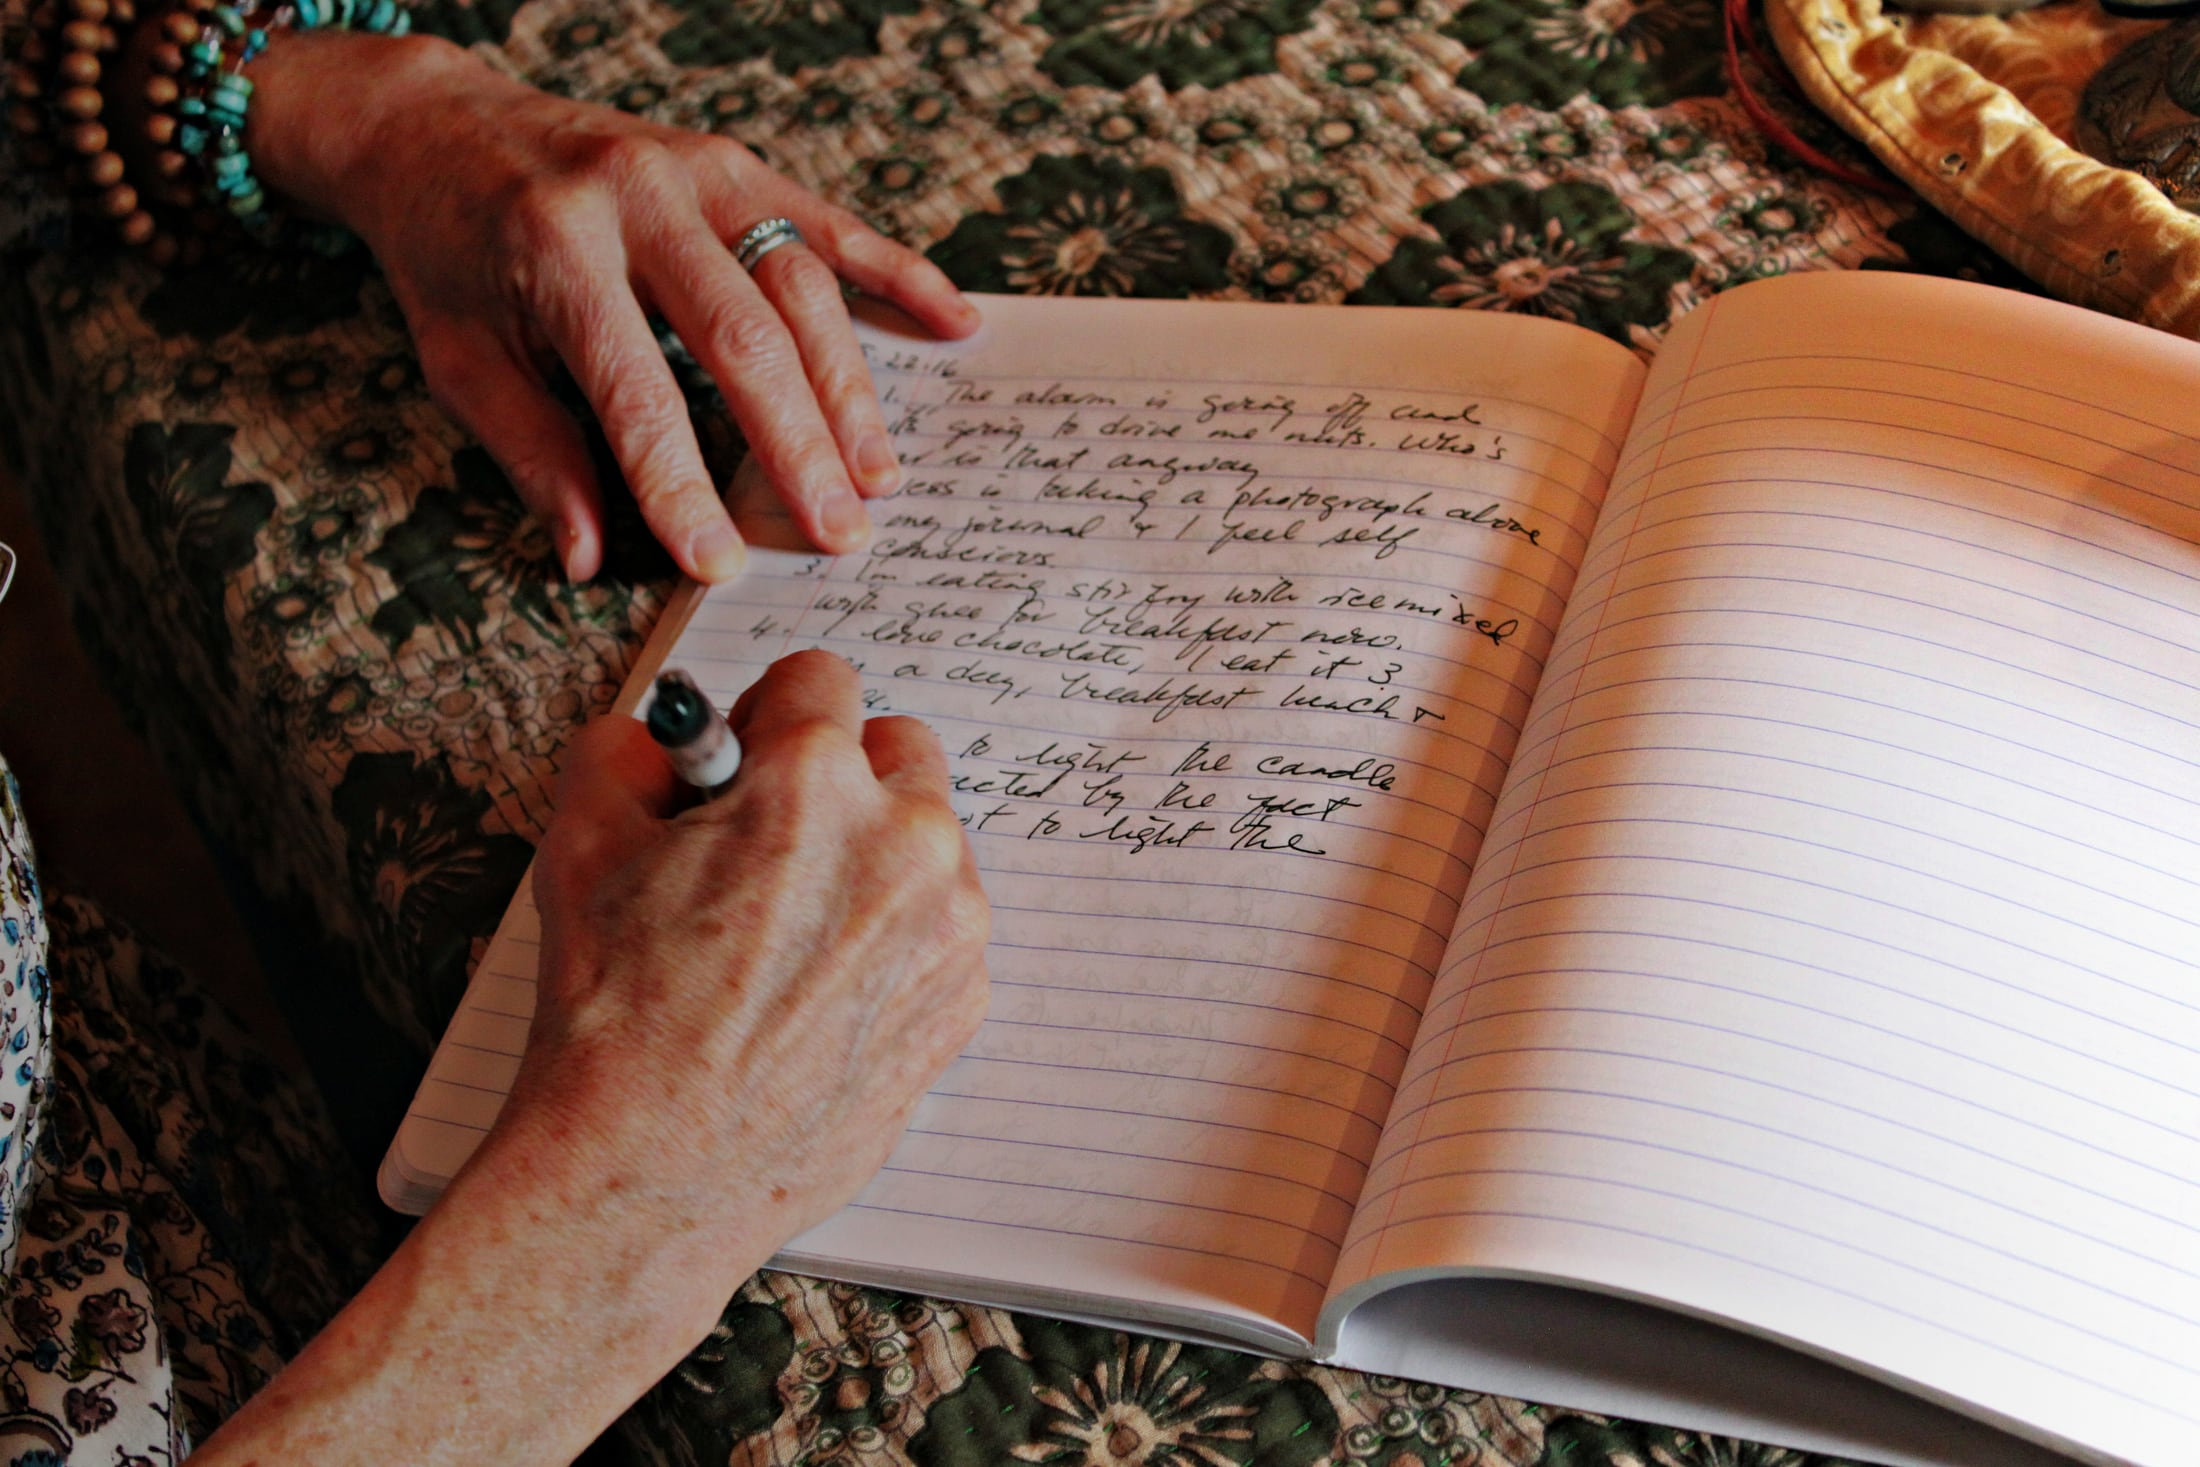 Let's Write Together - New workshops coming up soon